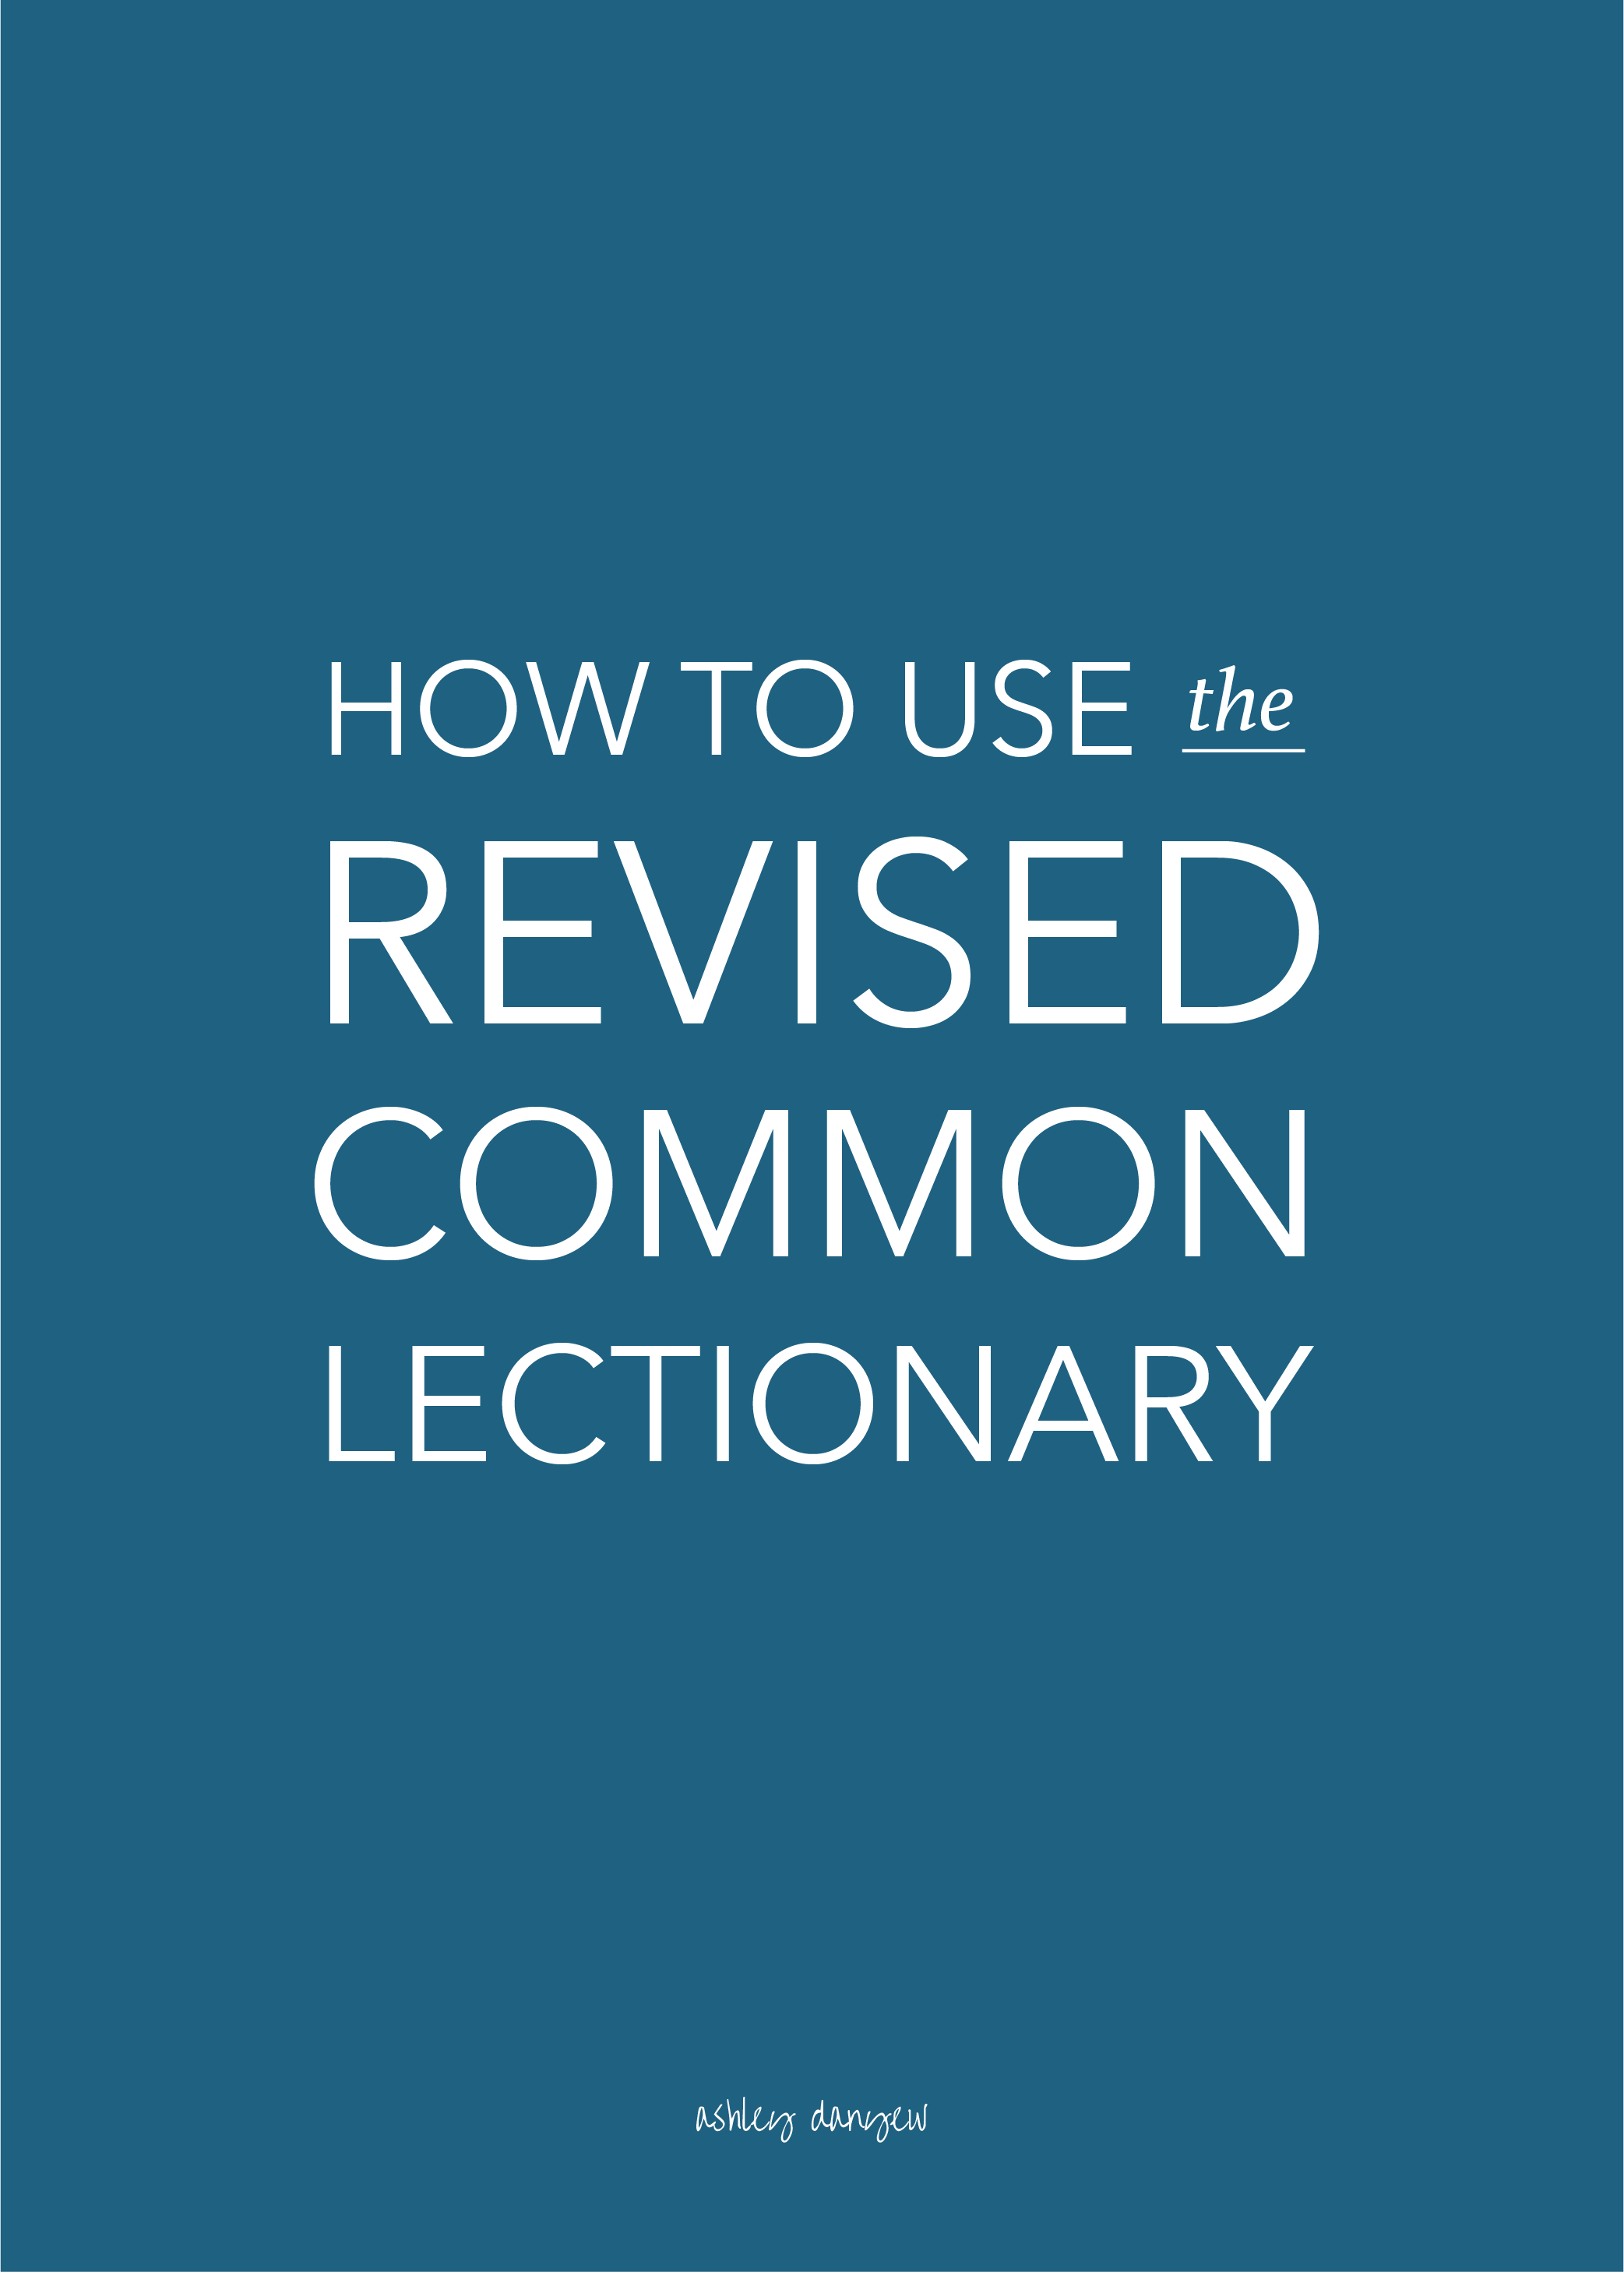 Copy of How to Use the Revised Common Lectionary